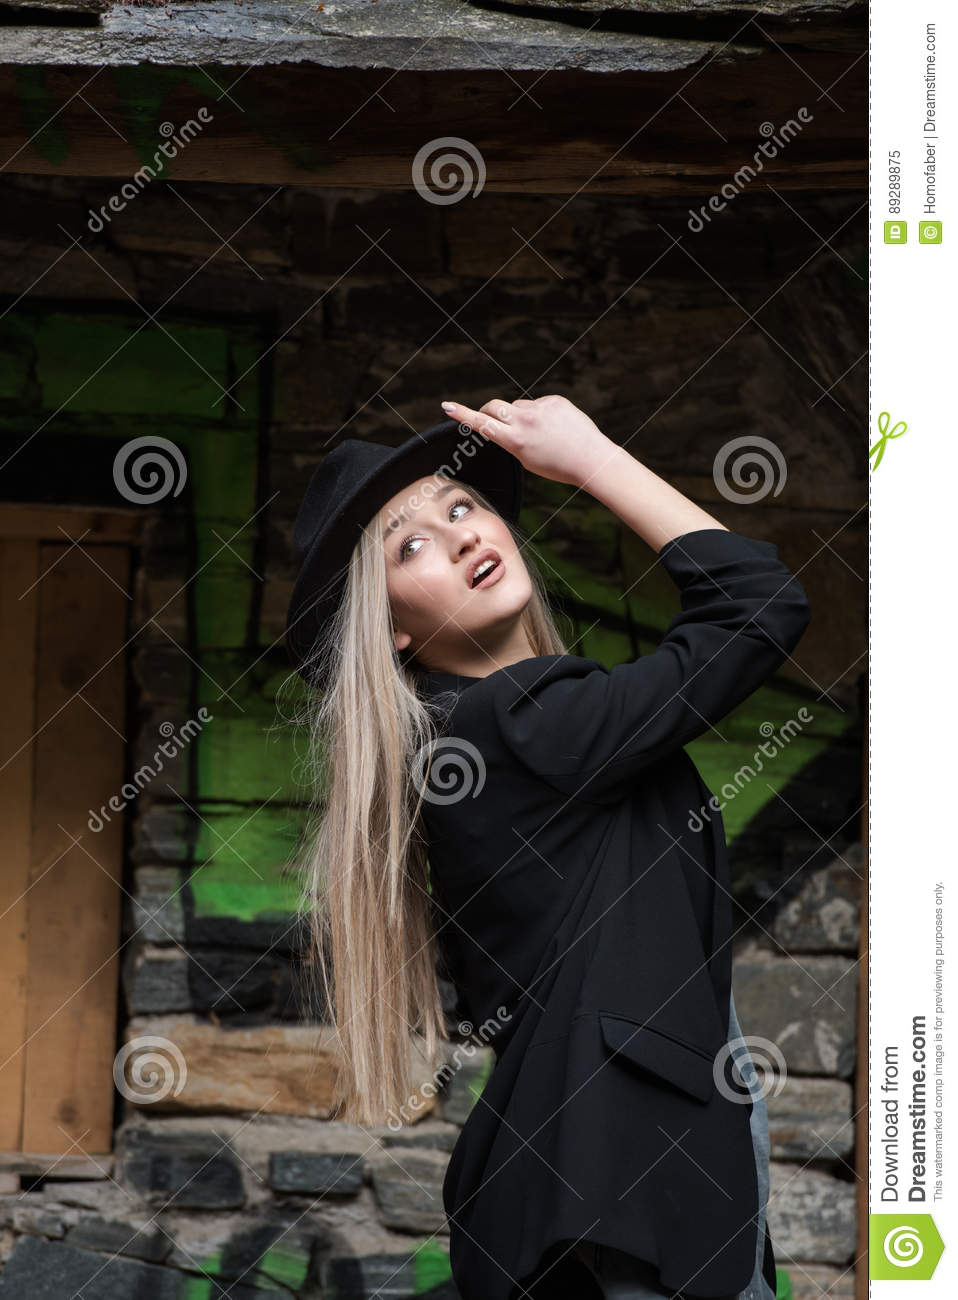 Cute blond teen wear black jacket and hat